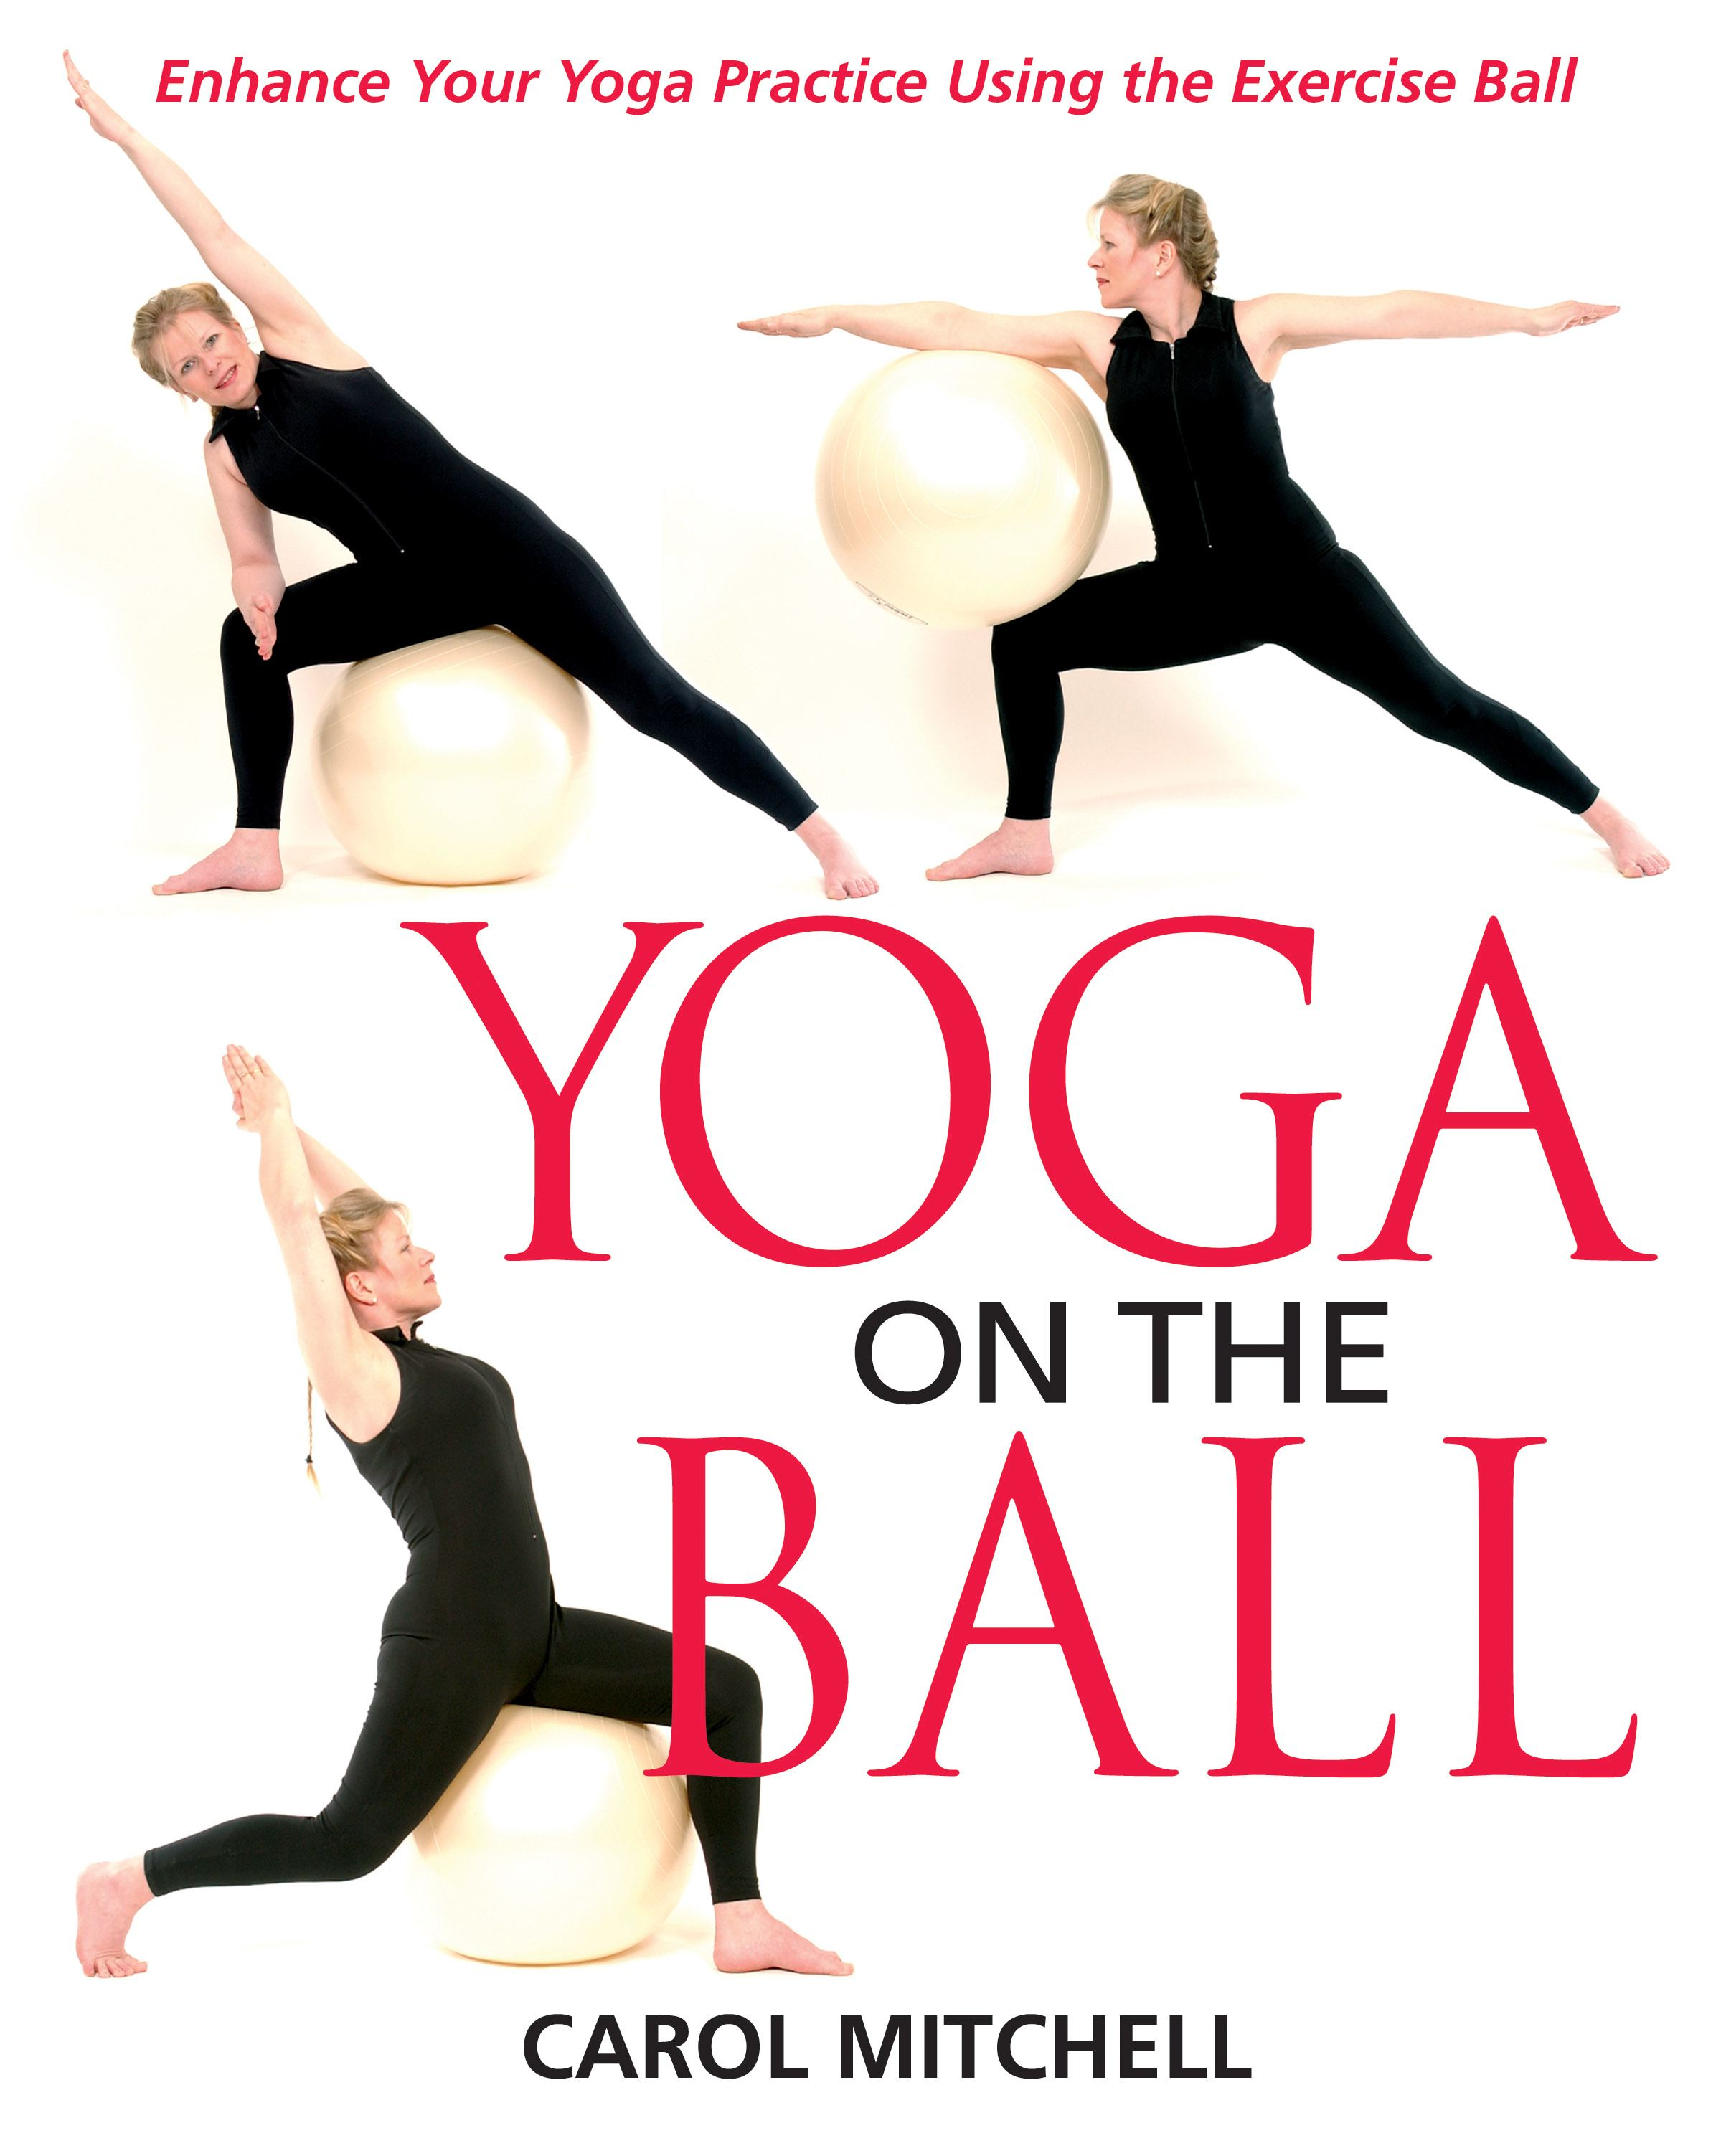 Yoga on the ball 9780892819997 hr